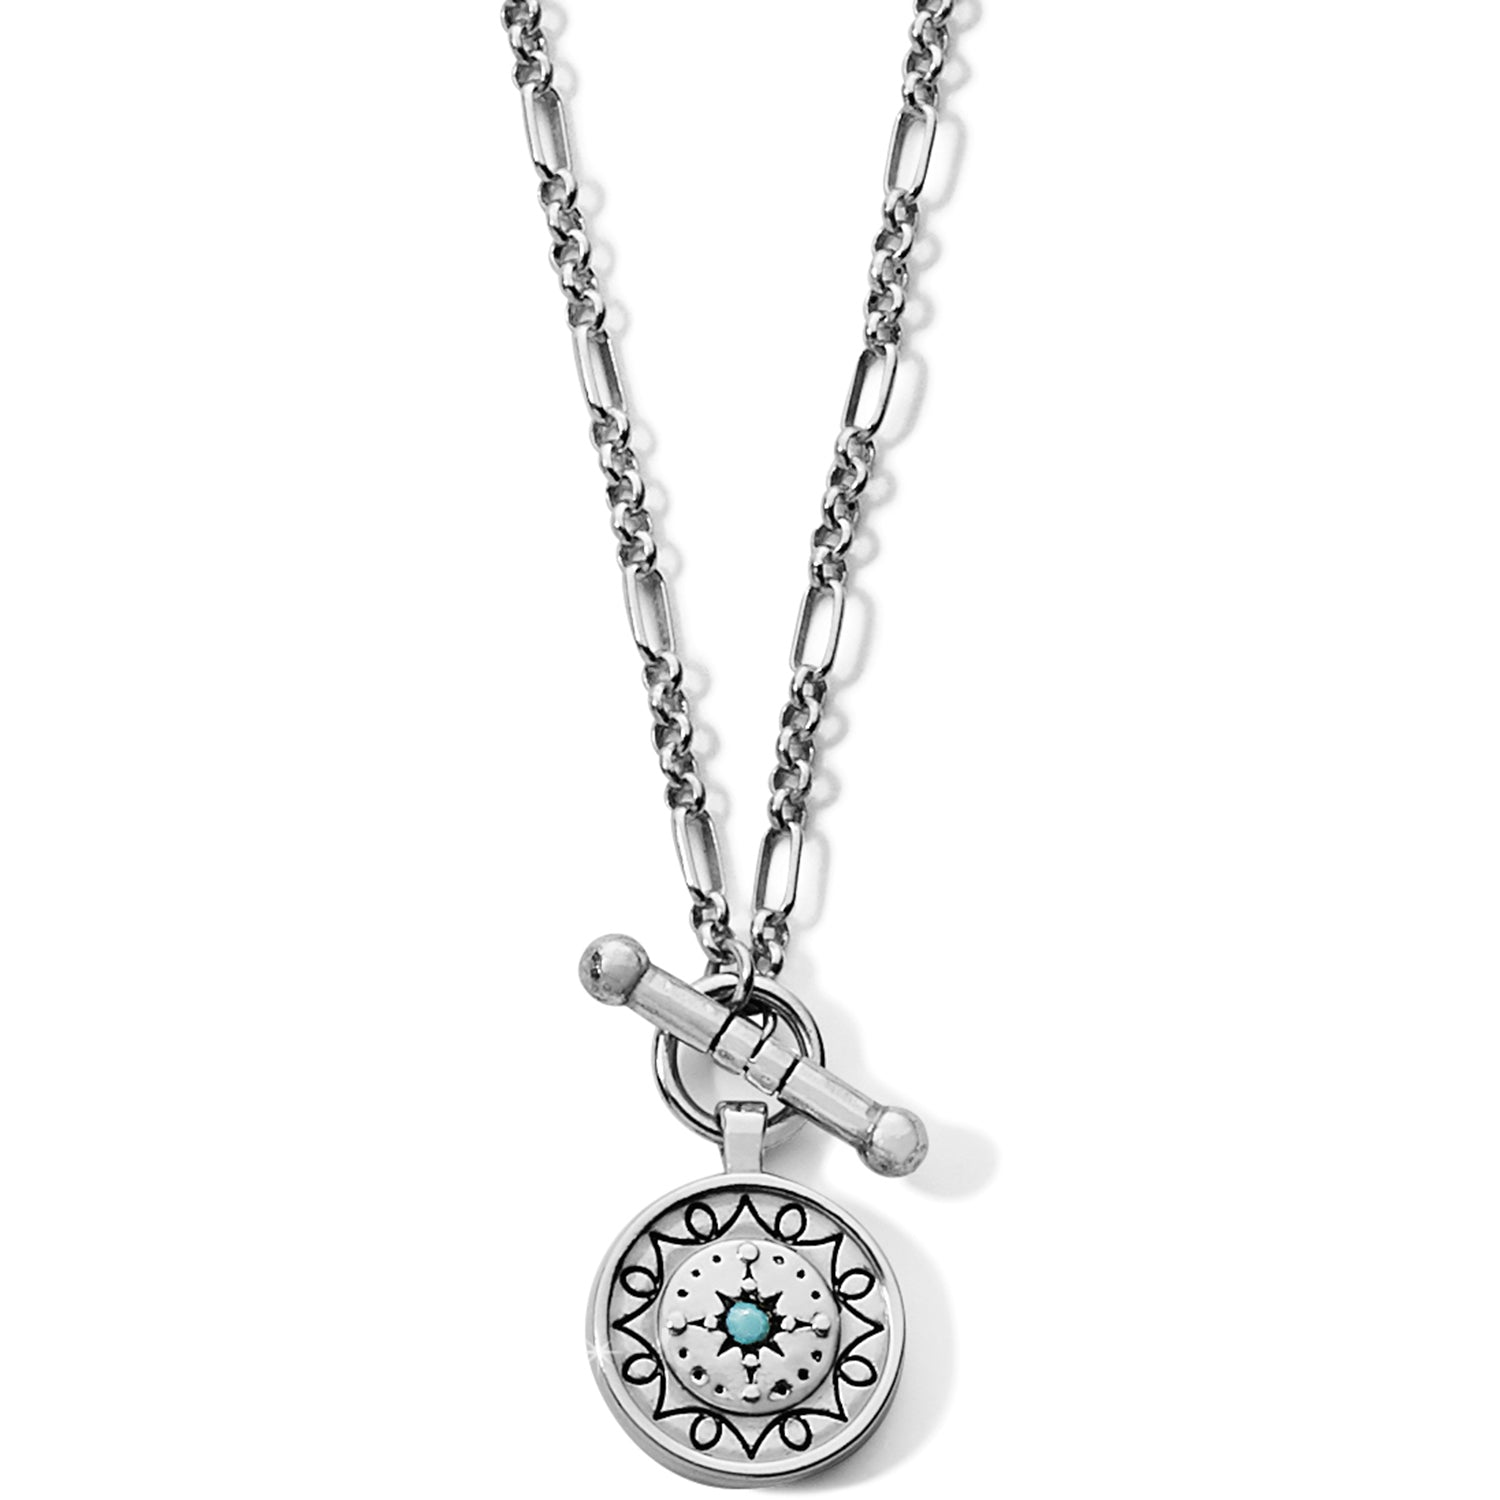 Marrakesh Mystique Short Toggle Necklace